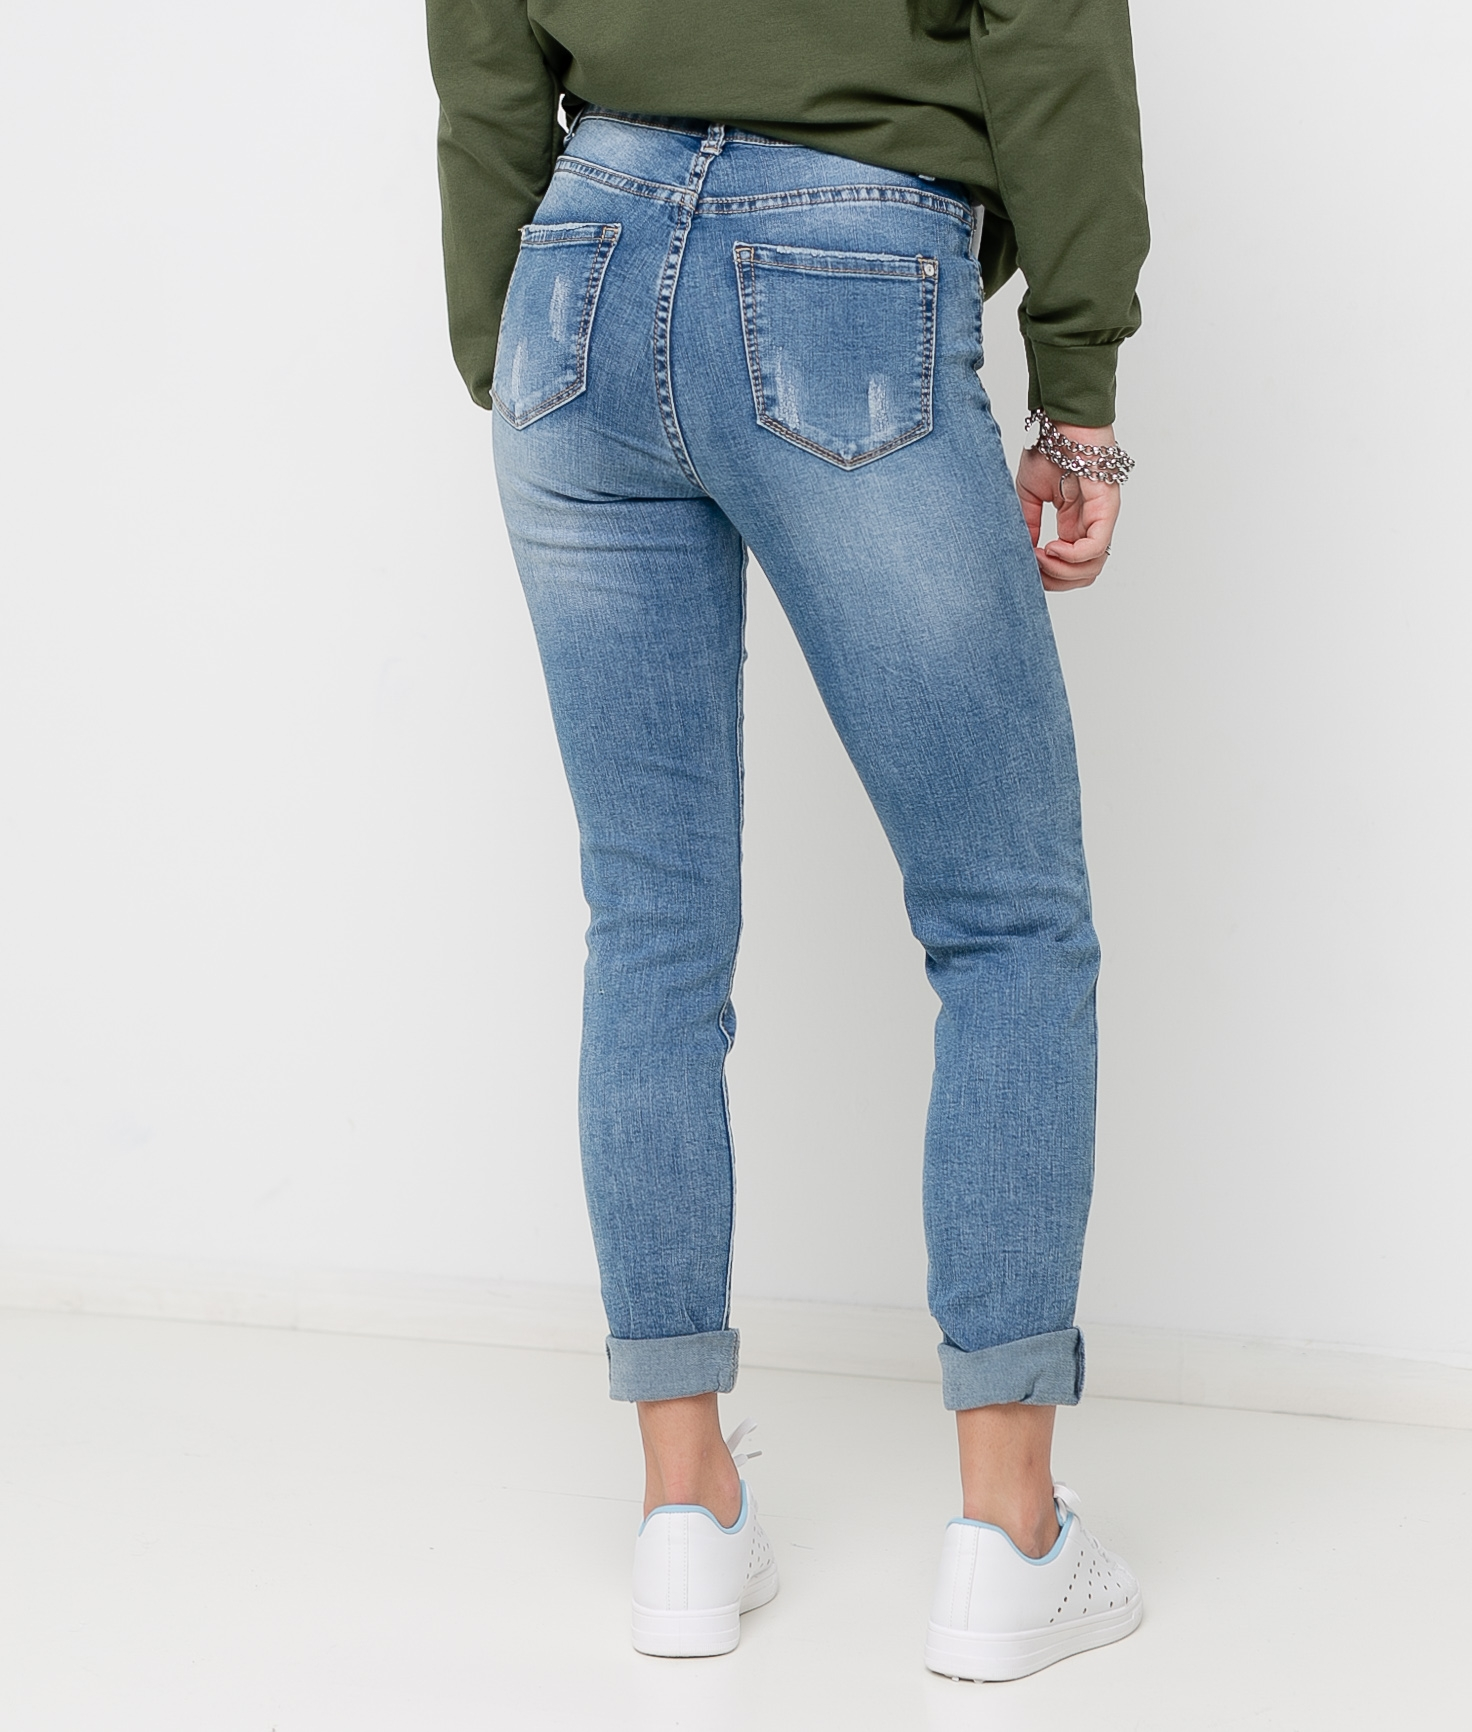 Cuber trousers - Denim